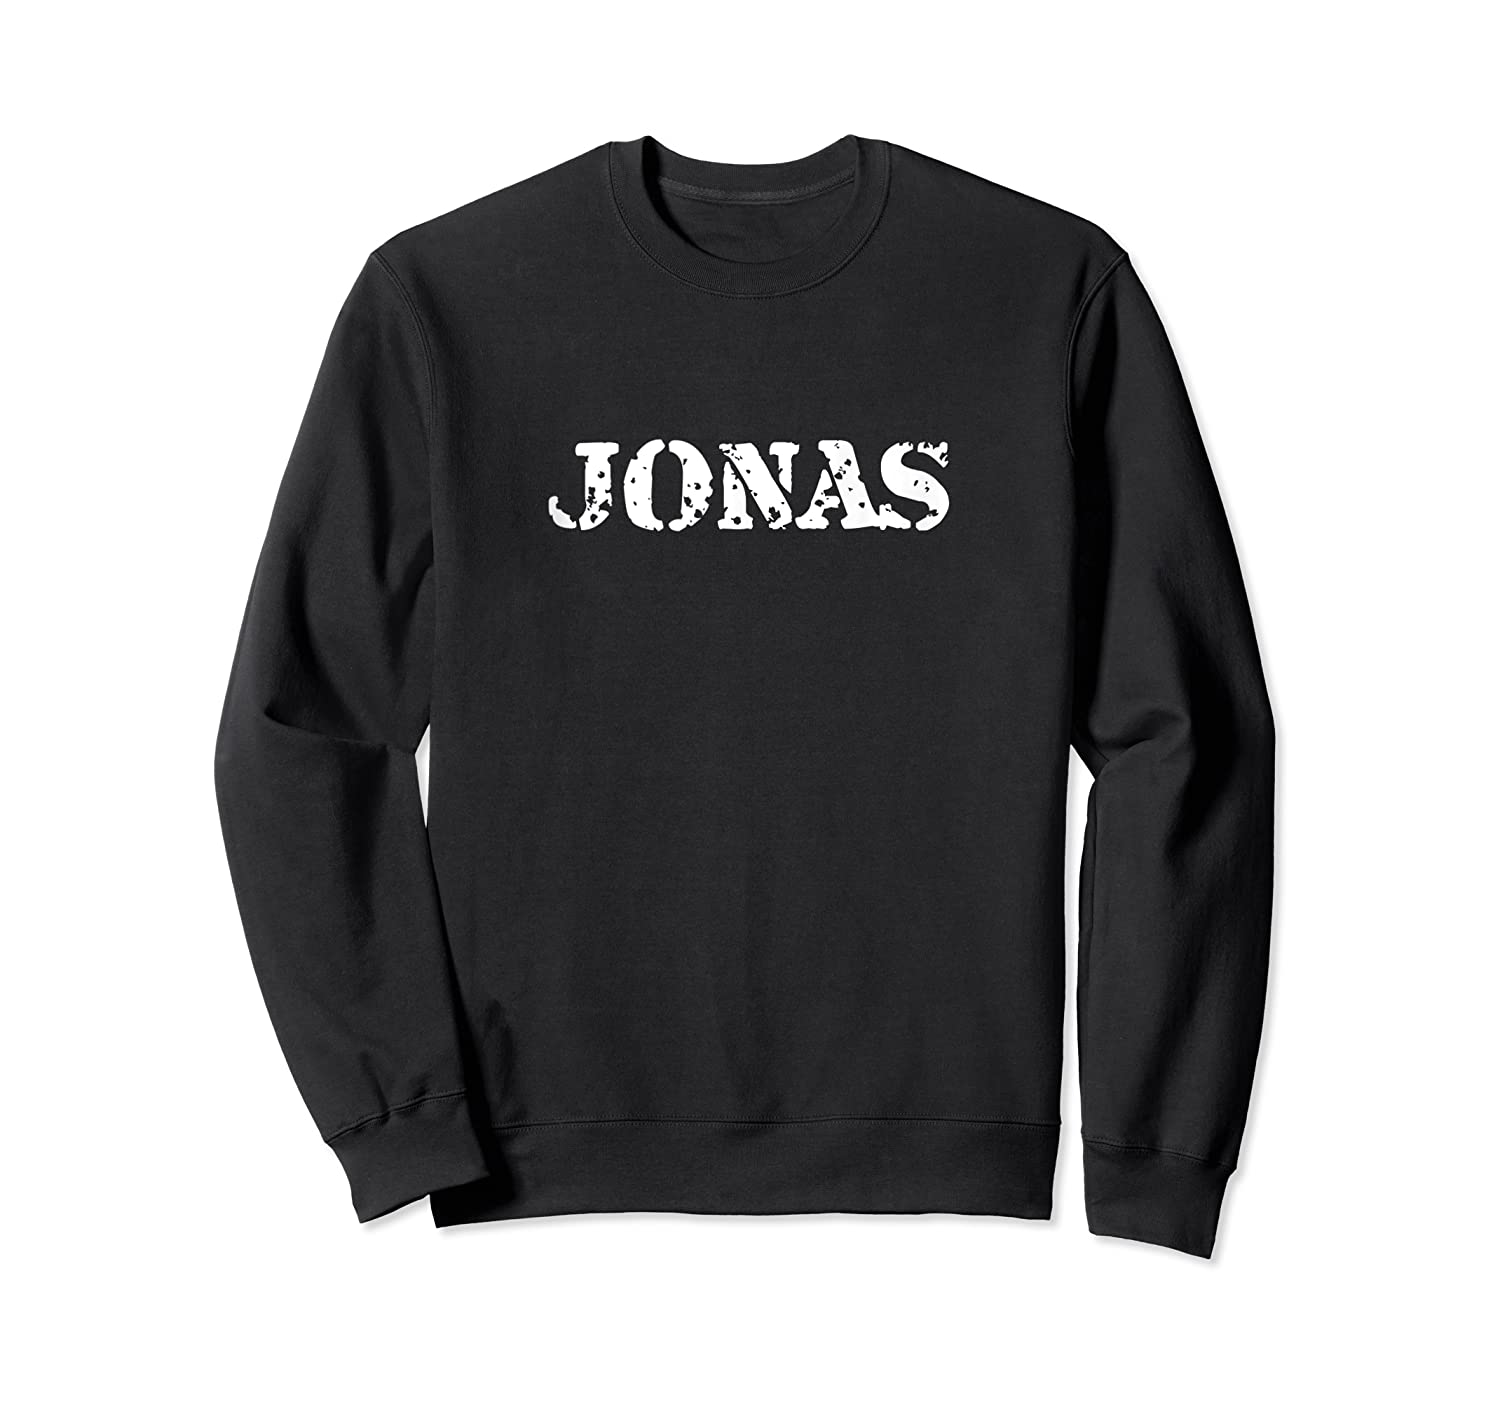 Jonas First Given Name Pride Distressed Gift Tank Top Shirts Crewneck Sweater